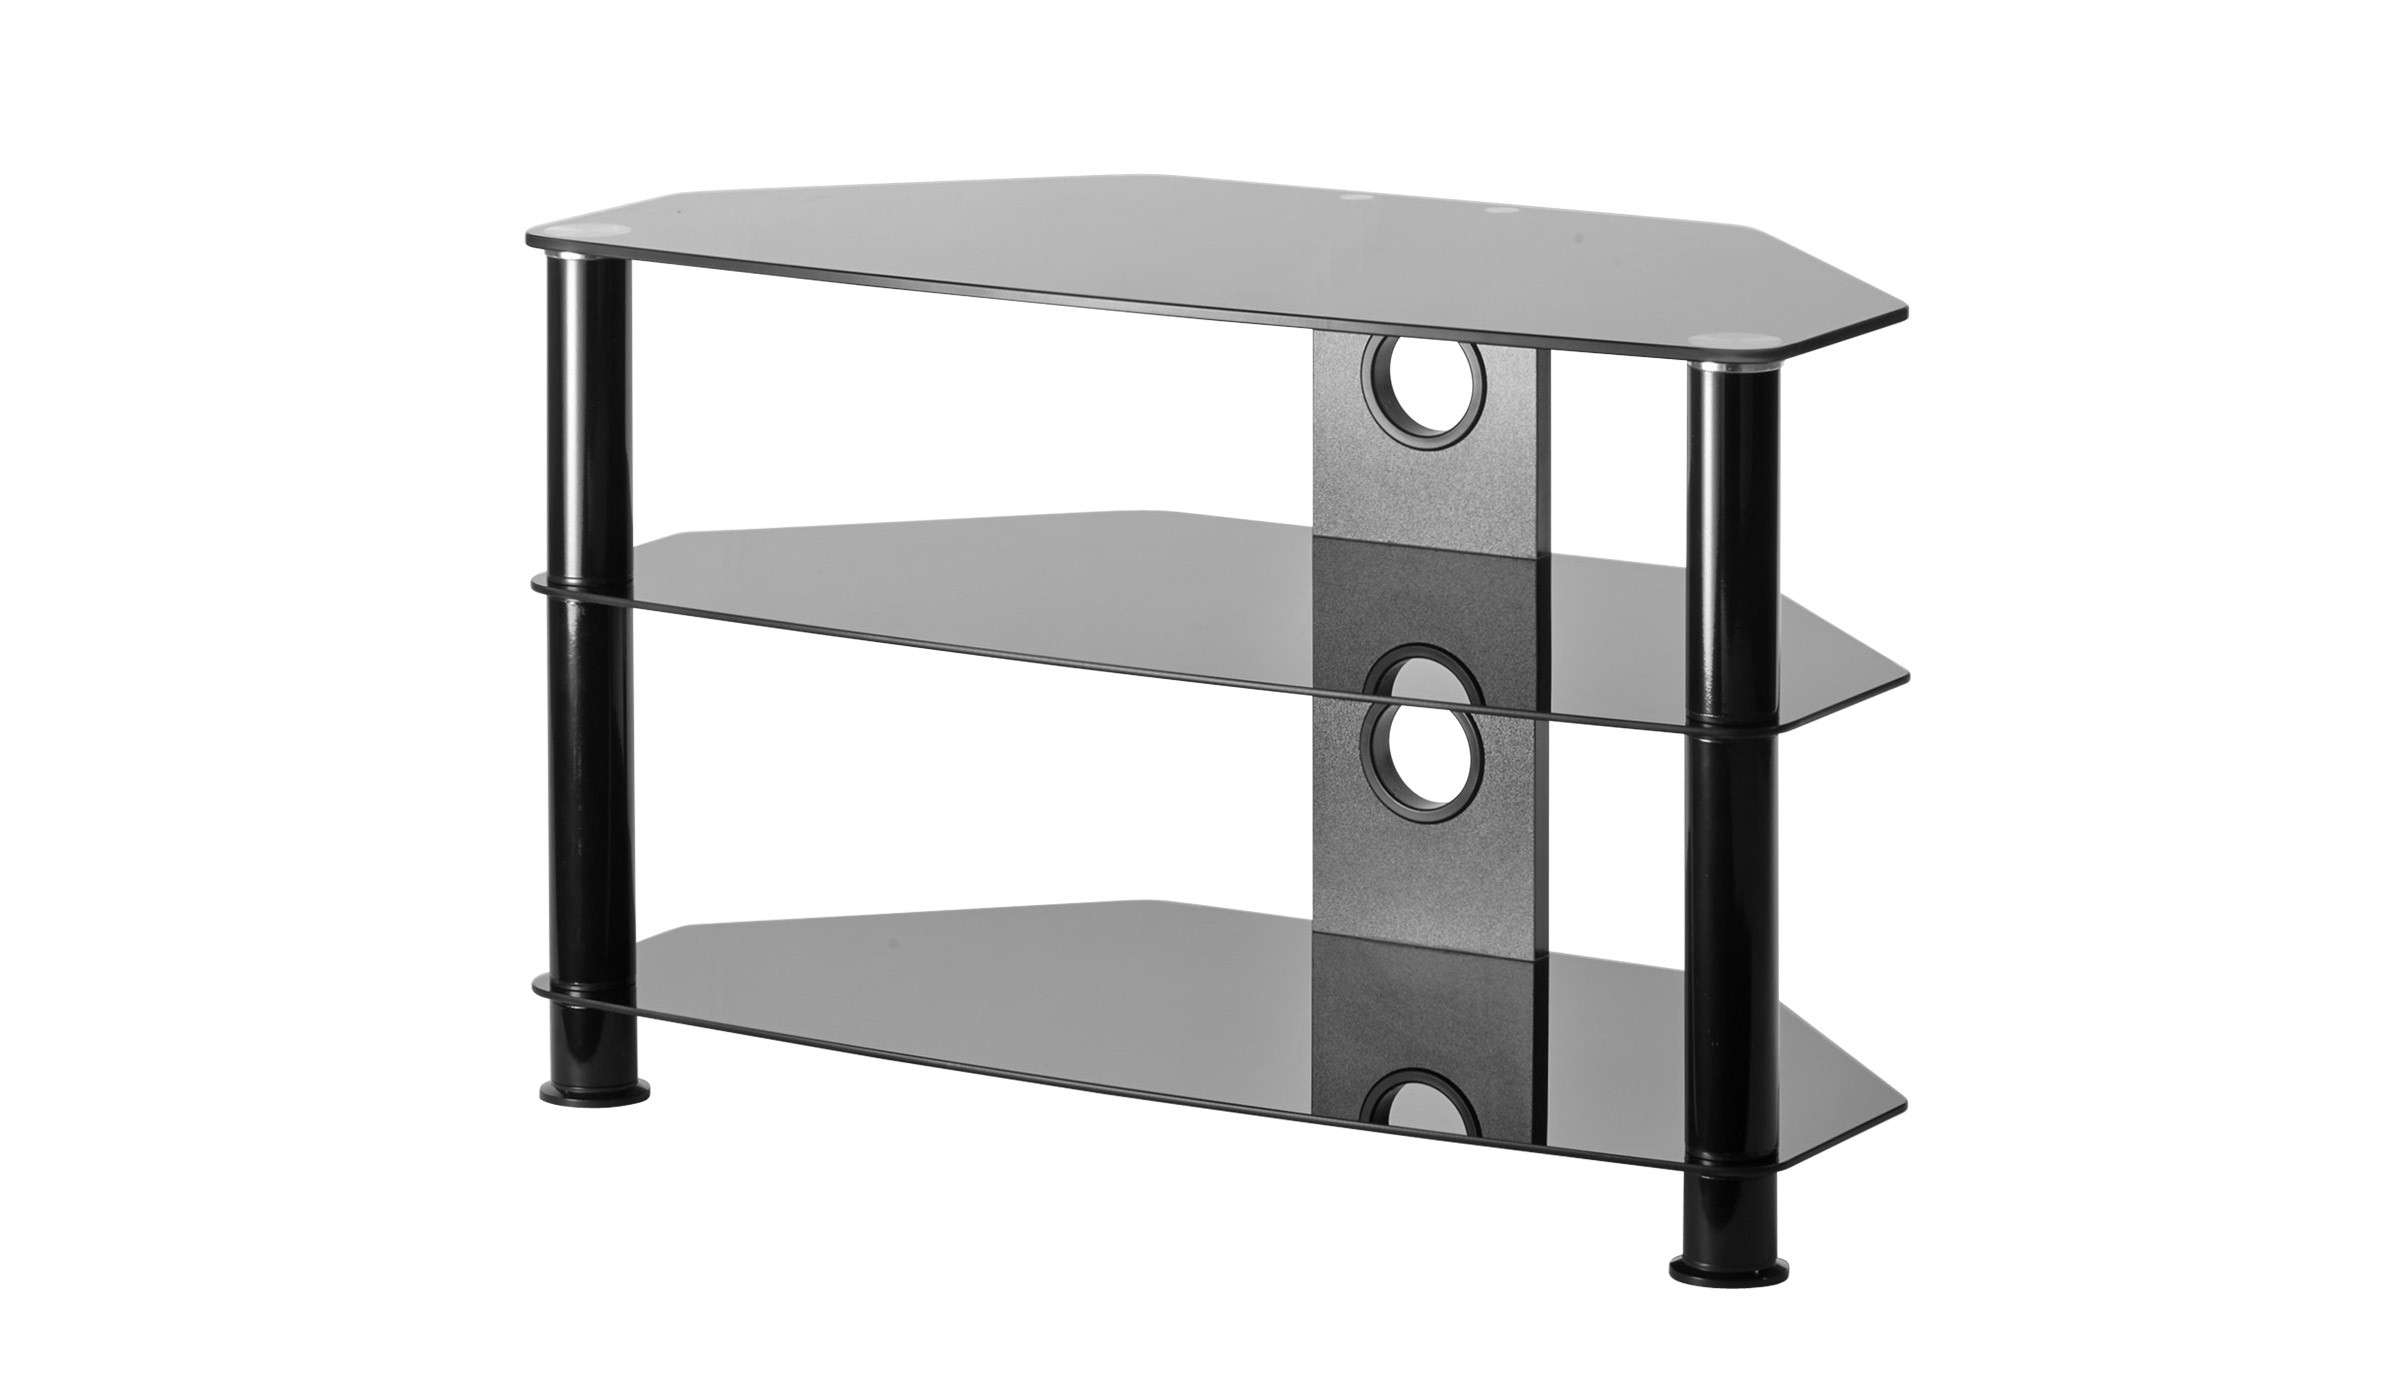 Black Glass Corner Tv Stand Up To 37 Inch Tv | Mmt Db800 Within Black Corner Tv Cabinets (View 3 of 20)